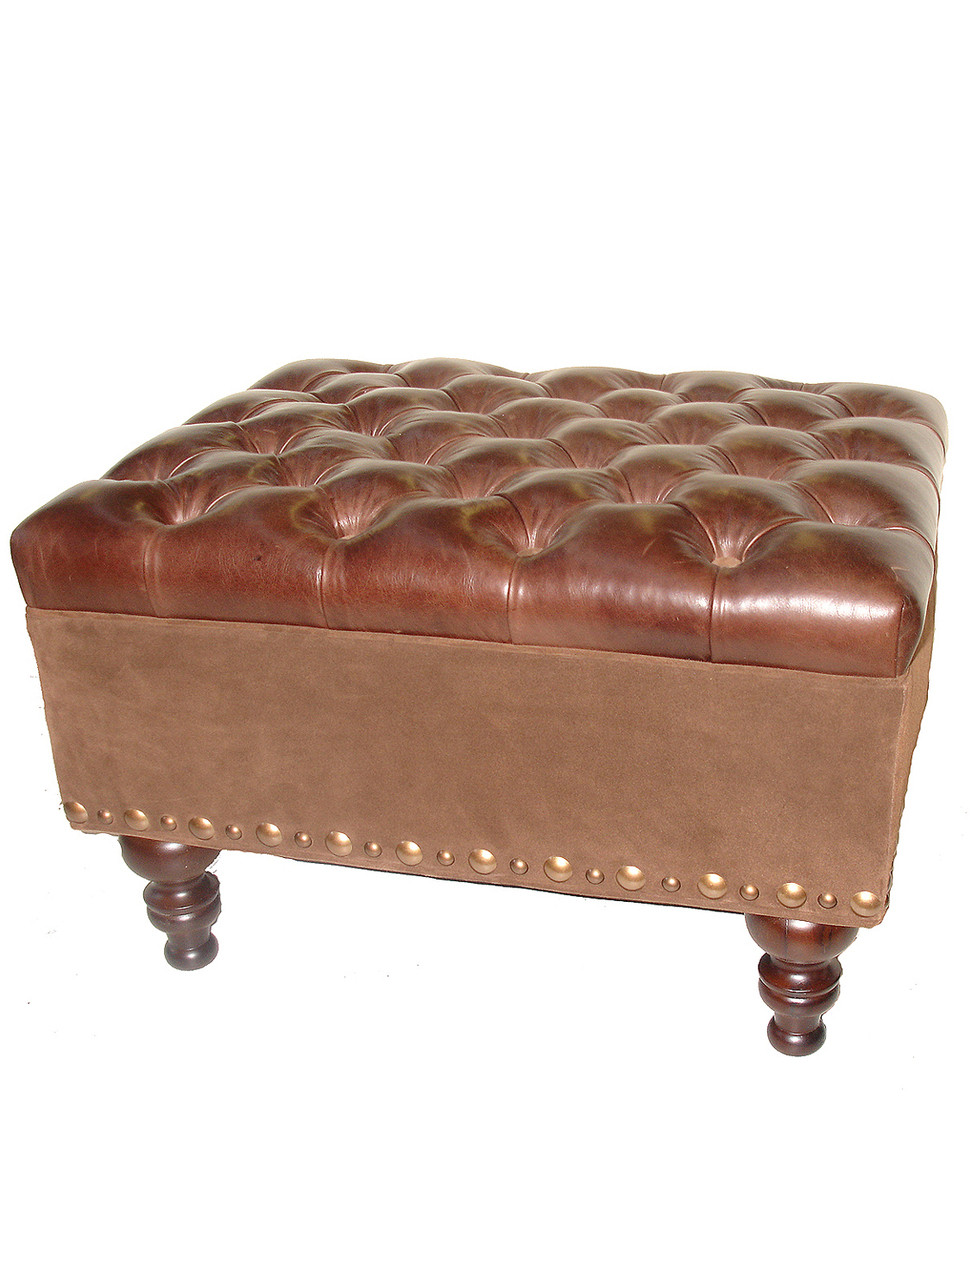 Astonishing 5324 Tufted Ottoman Rags Frankydiablos Diy Chair Ideas Frankydiabloscom